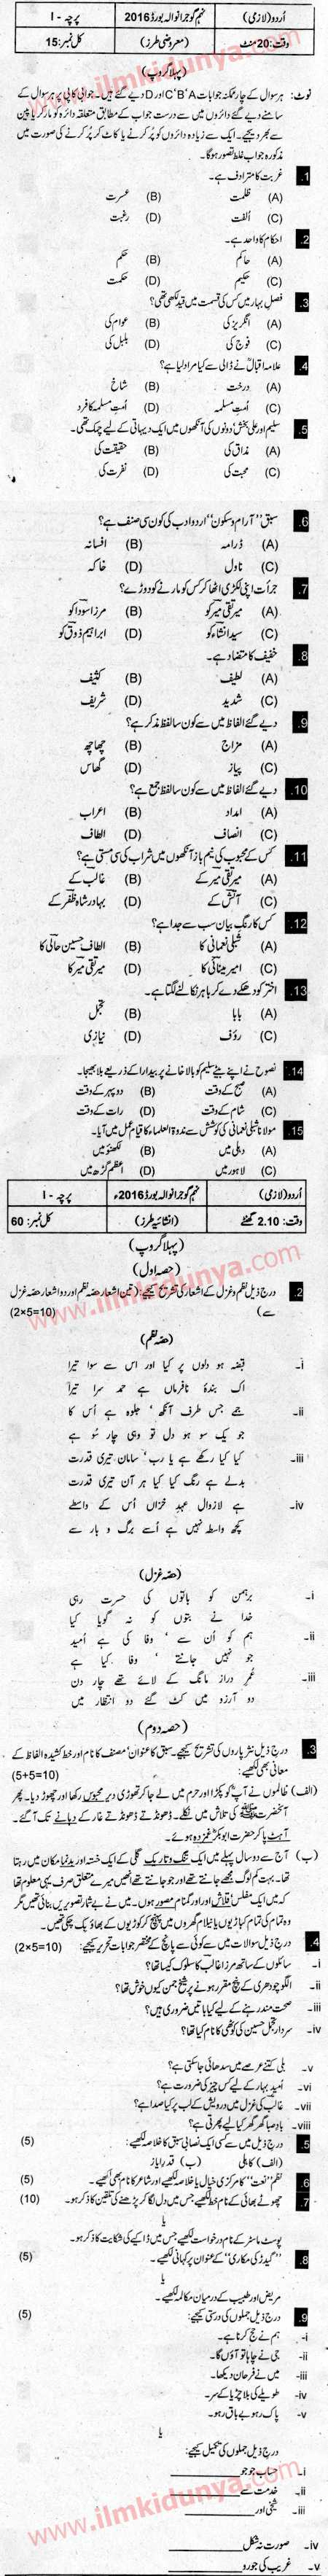 urdu essays for 8th class Free essays on allama iqbal essay for class 6th in urdu get help with your writing 1 through 30.